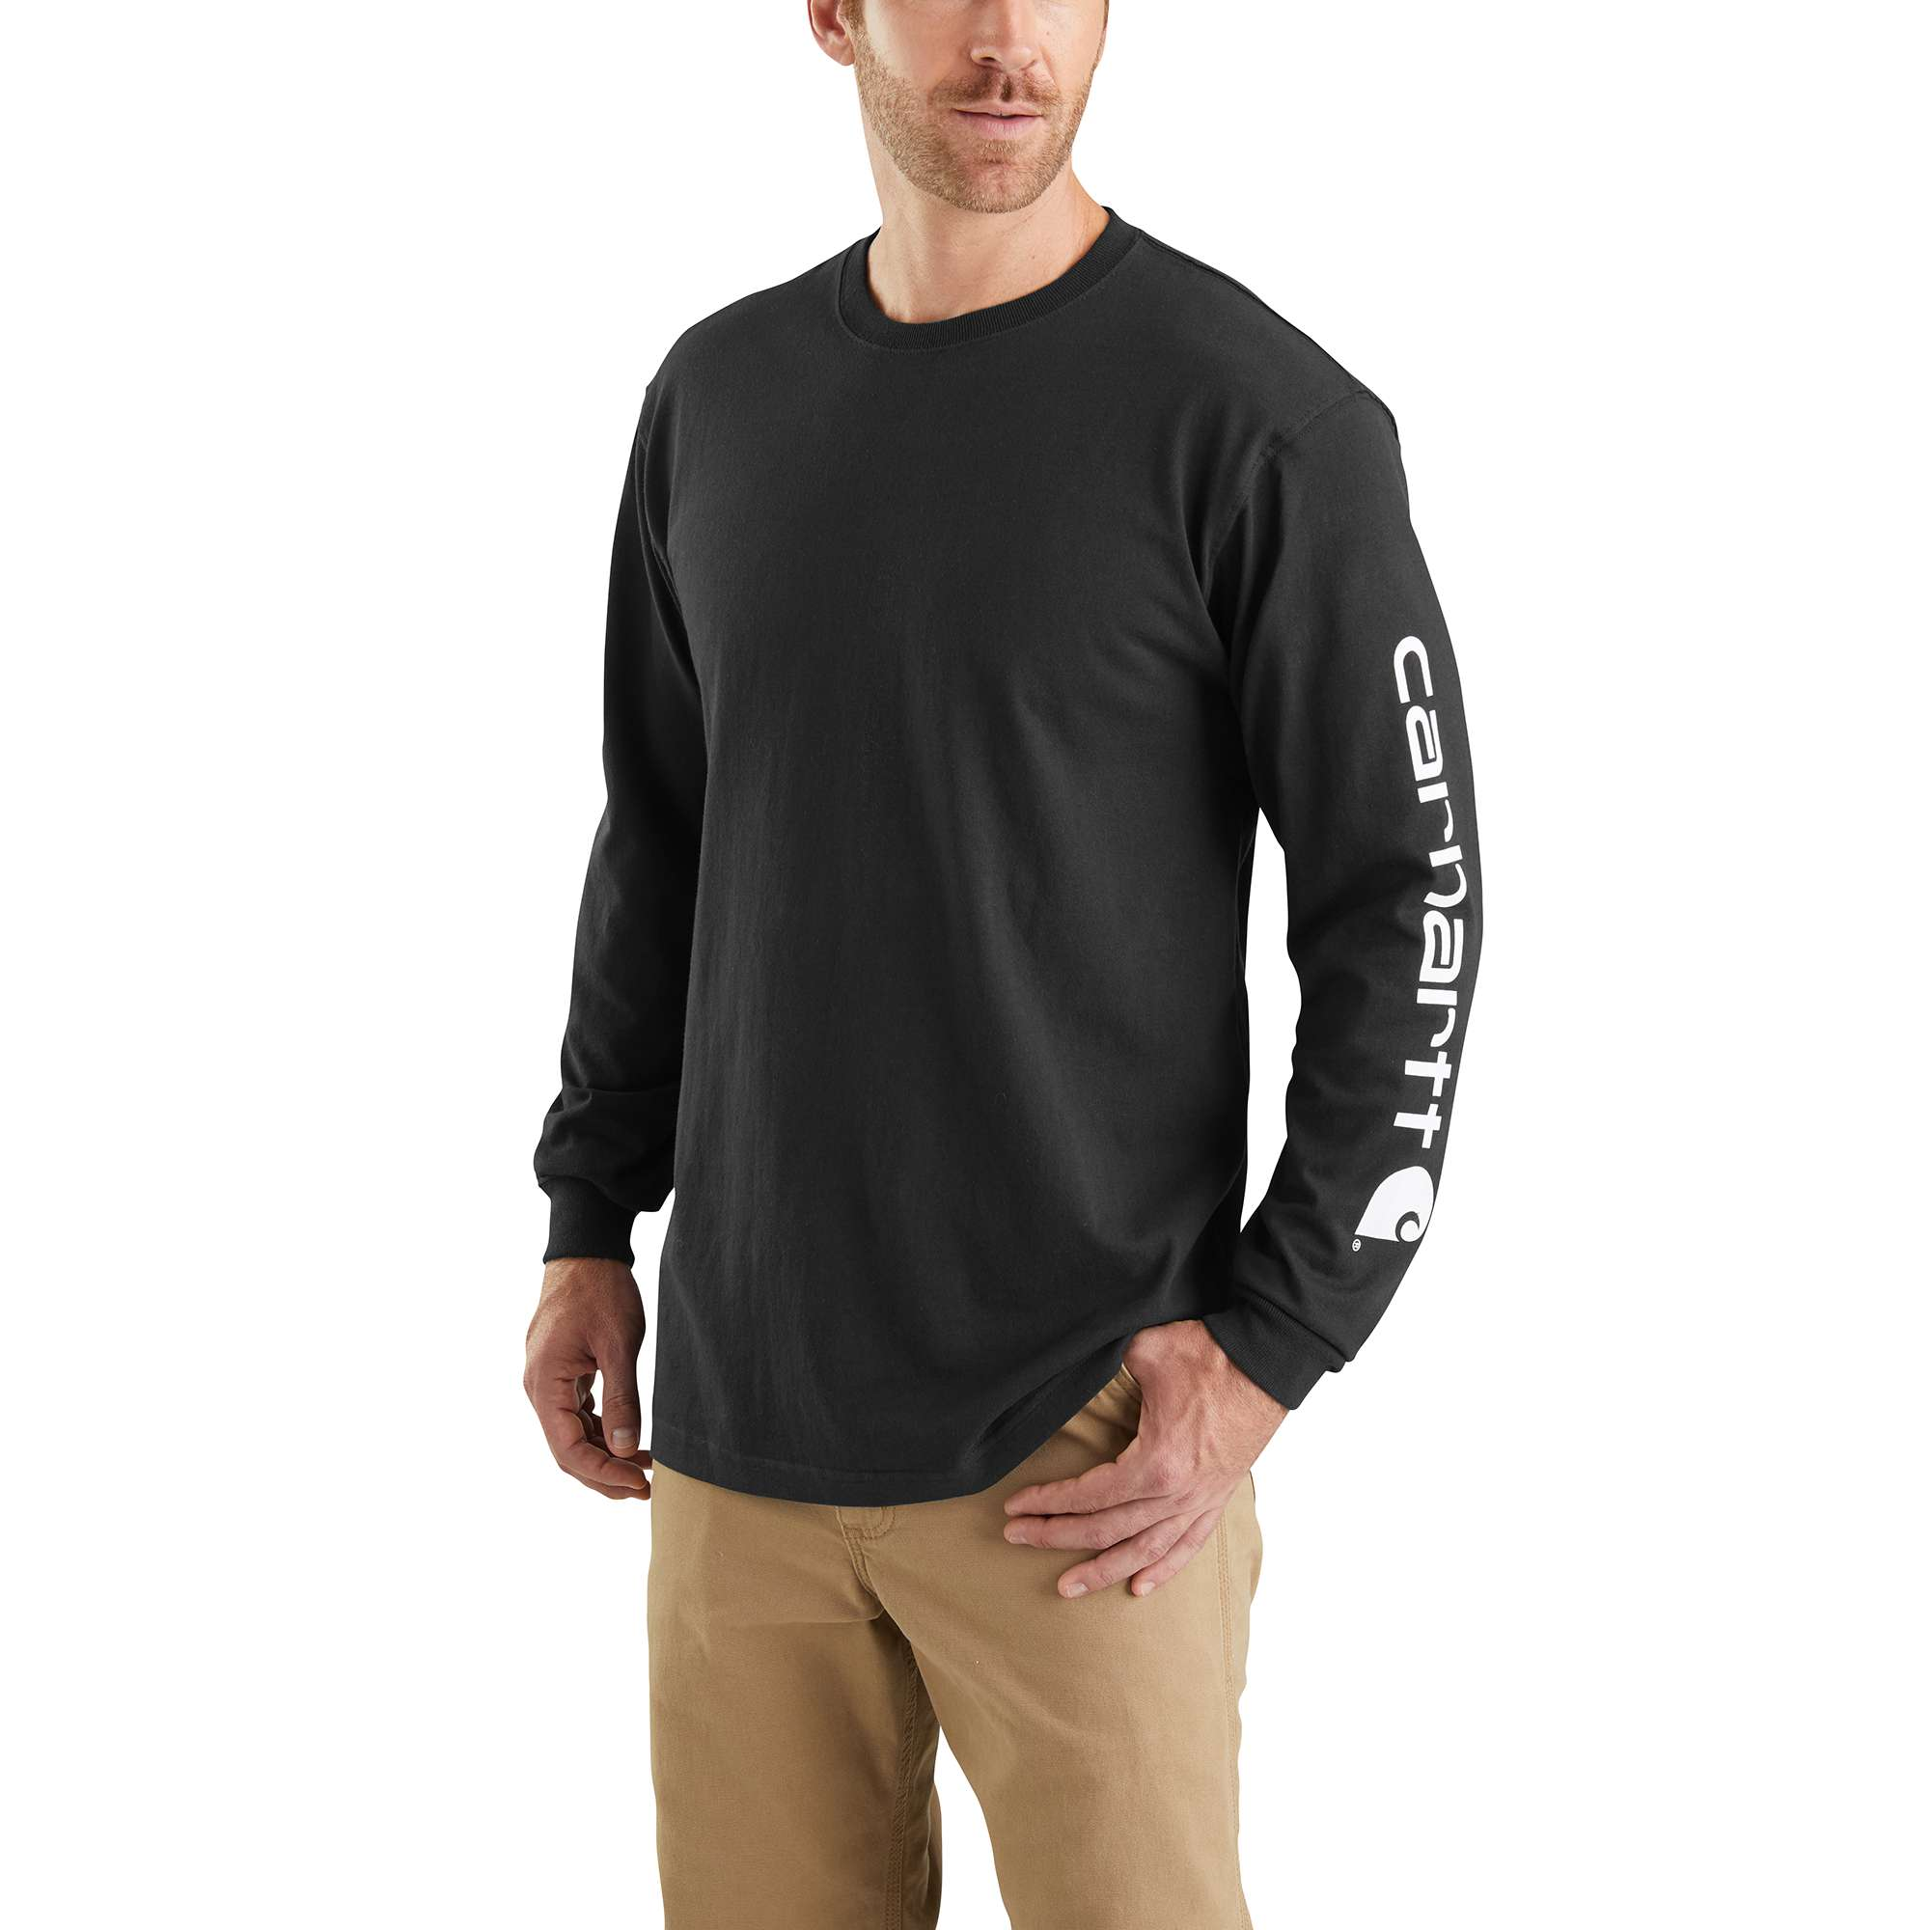 Men's Workwear Long-Sleeve Graphic Logo T-Shirt, Black, large